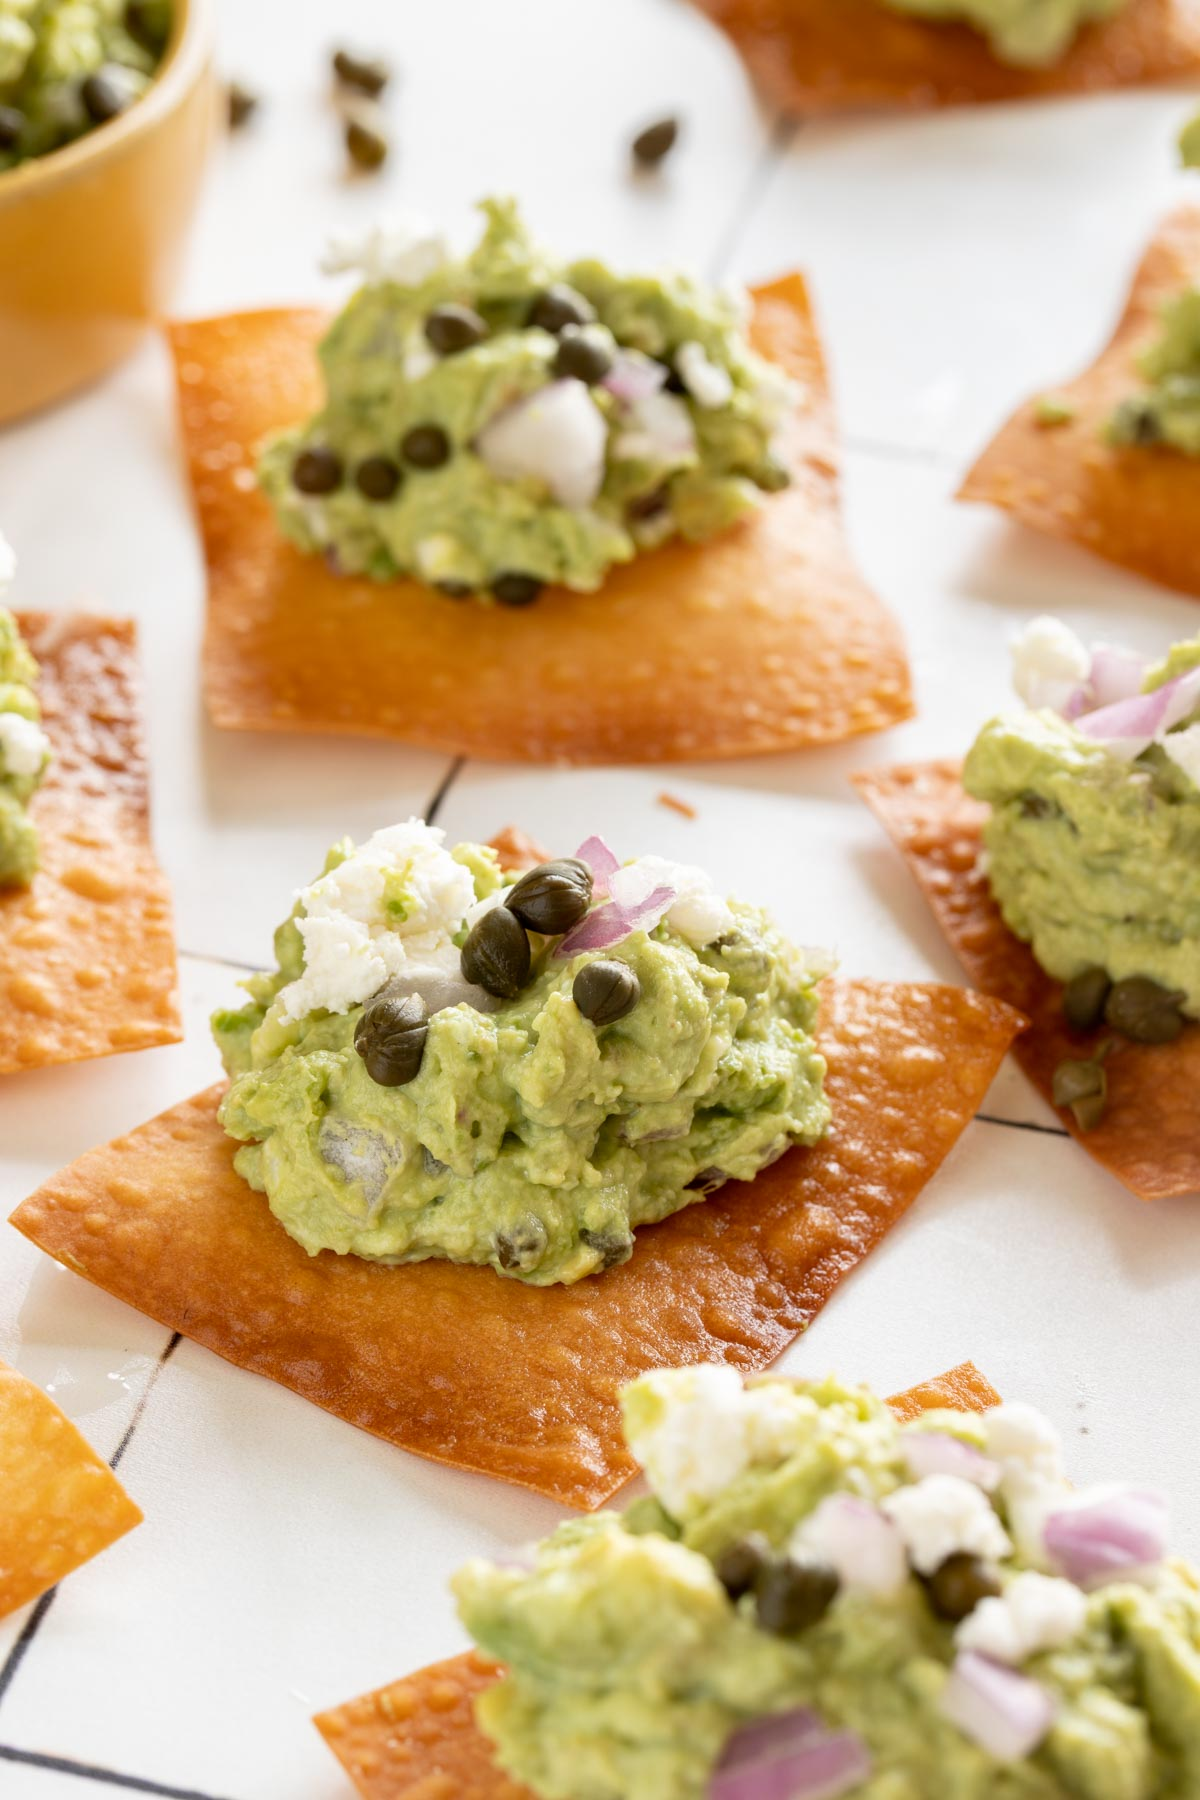 Goat cheese guacamole with wonton skins